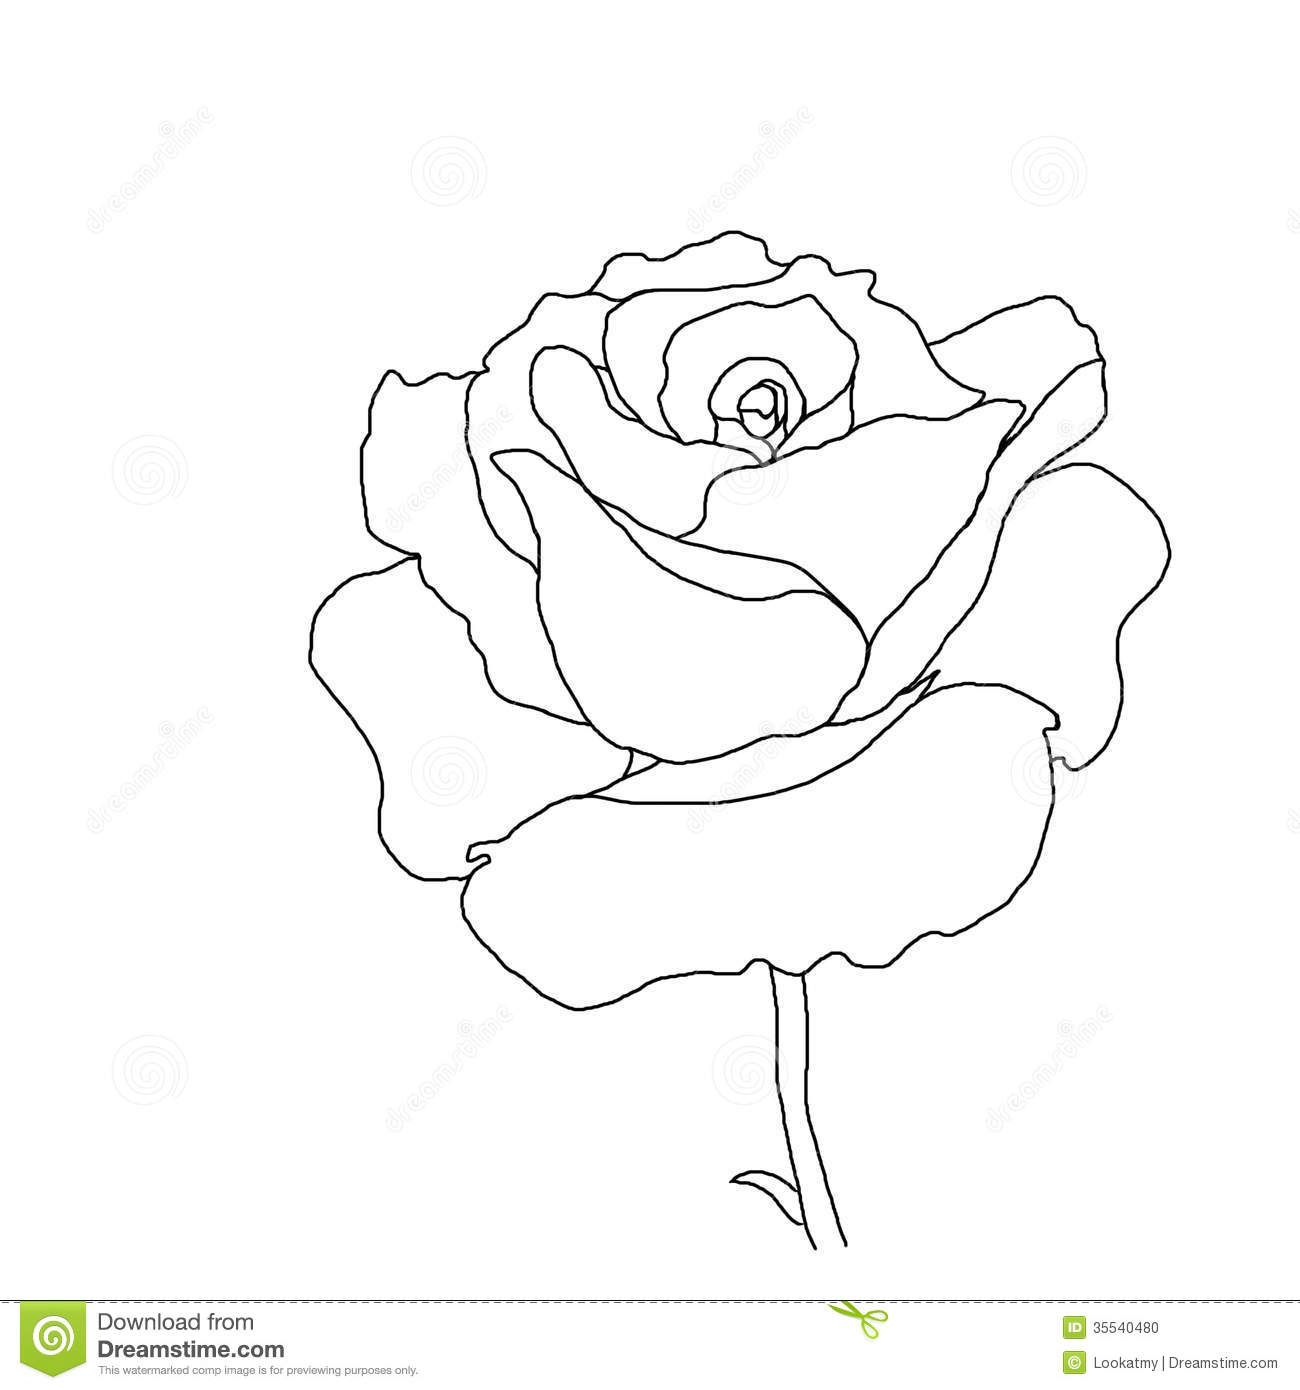 Rose flower outline stock illustration illustration of flower rose flower outline mightylinksfo